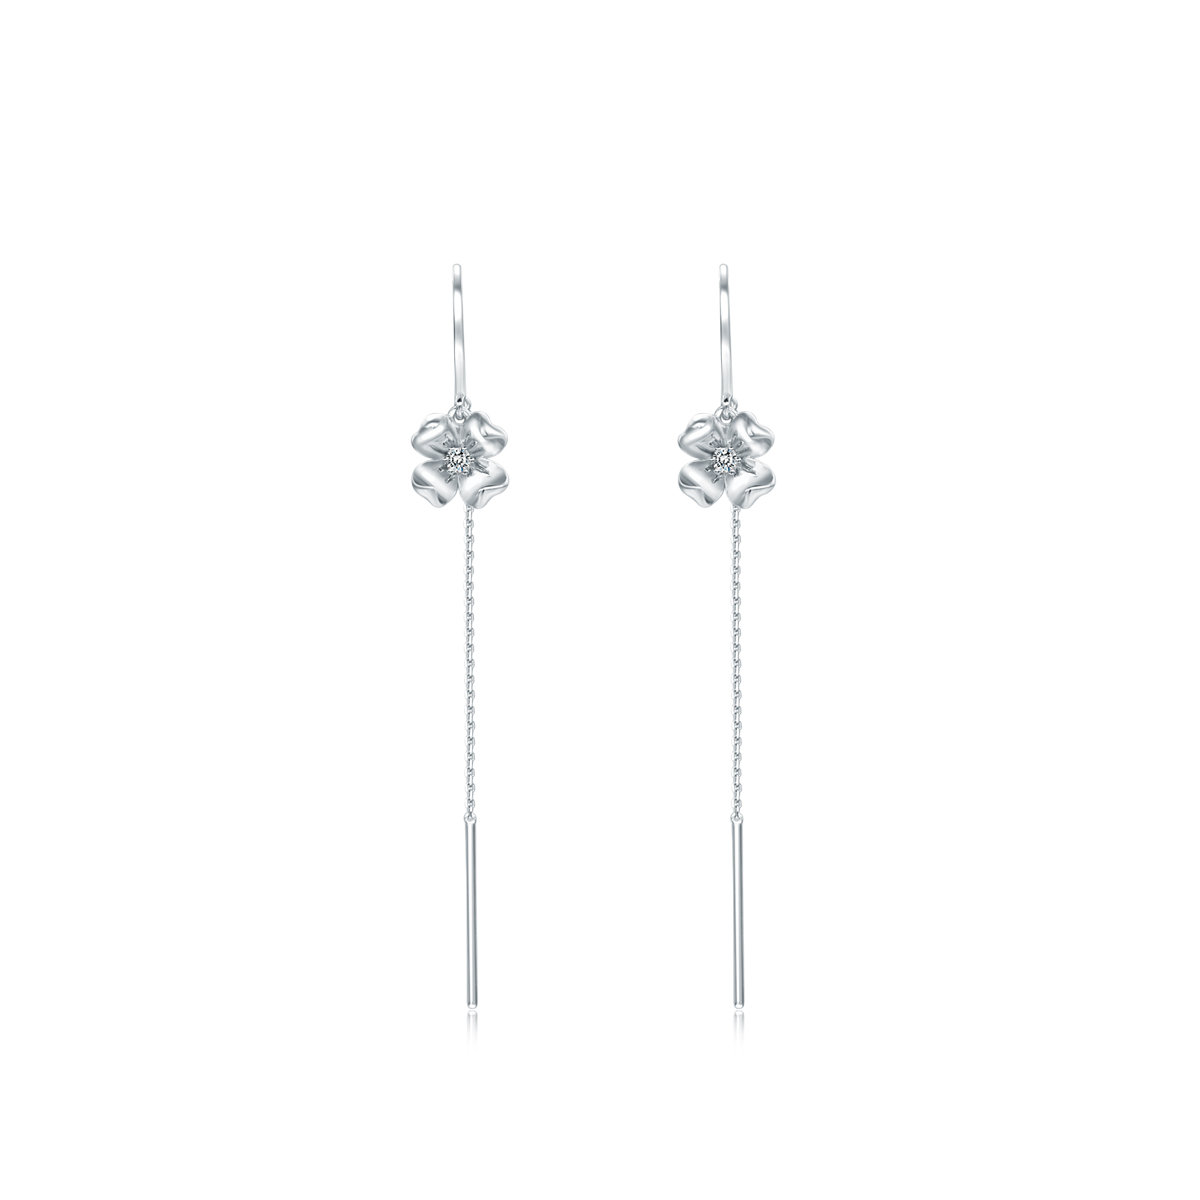 Love in Petals: 18K/750 White Gold Diamond Earrings